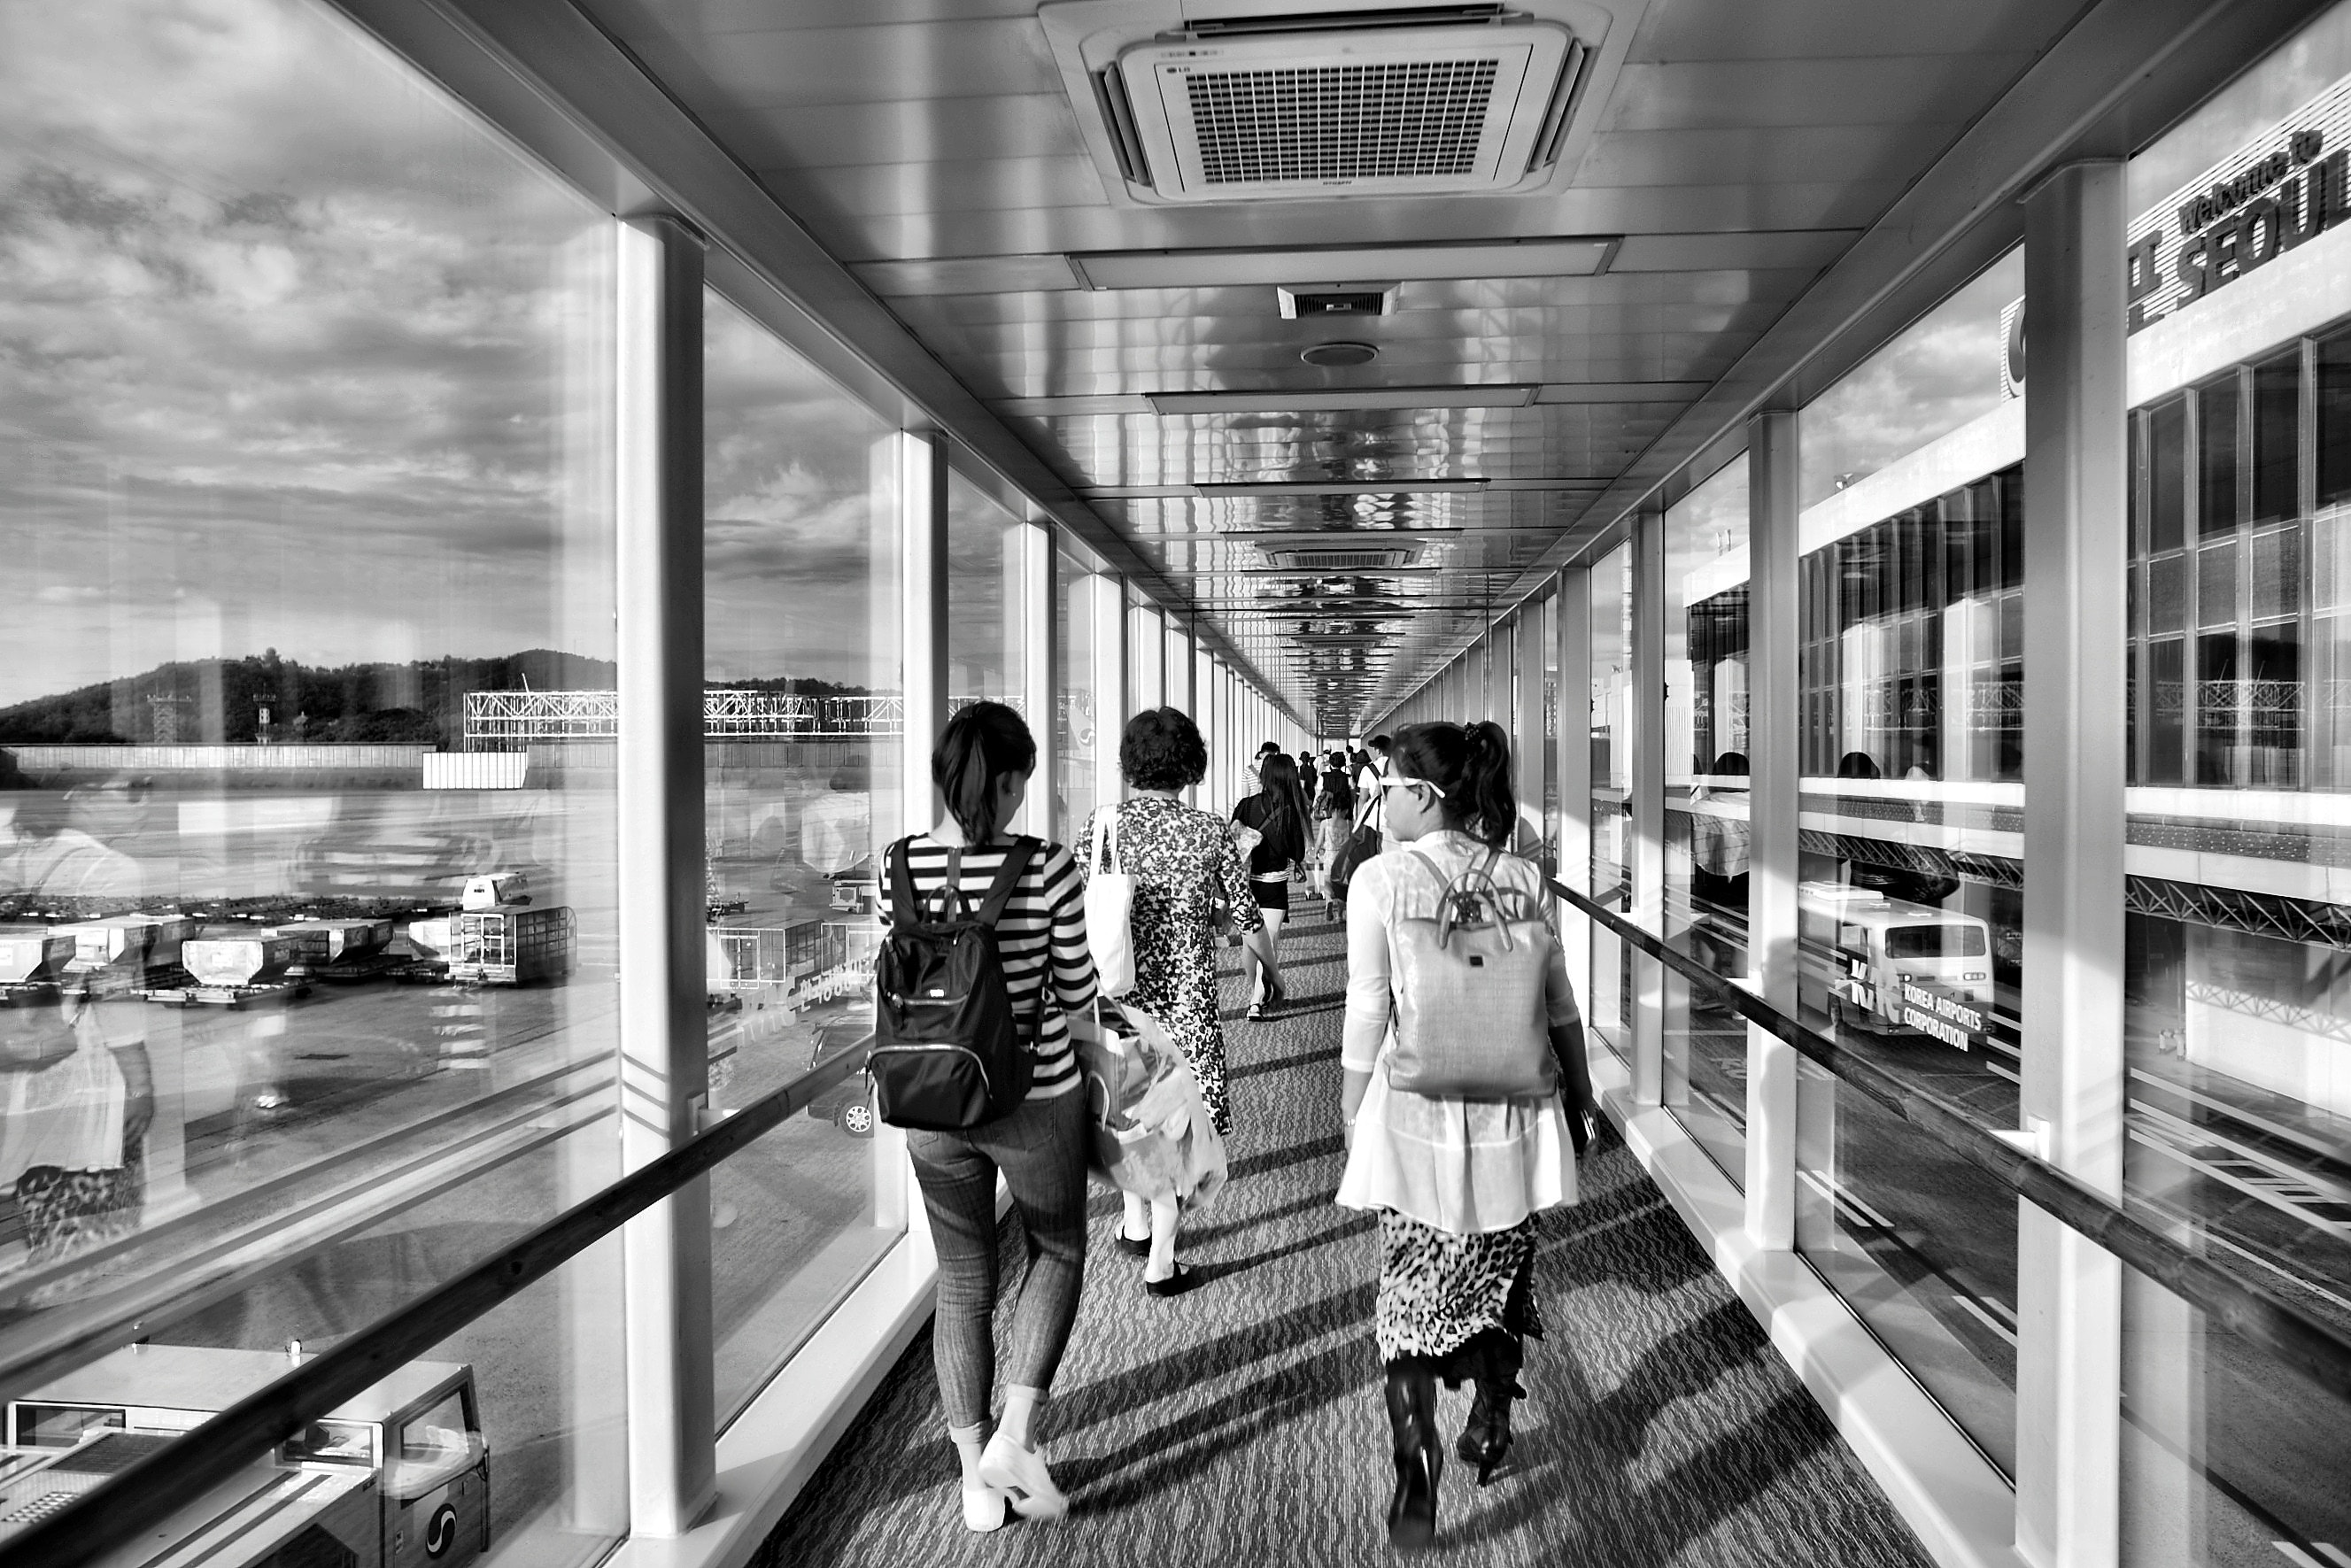 airport-black-and-white-people-156982